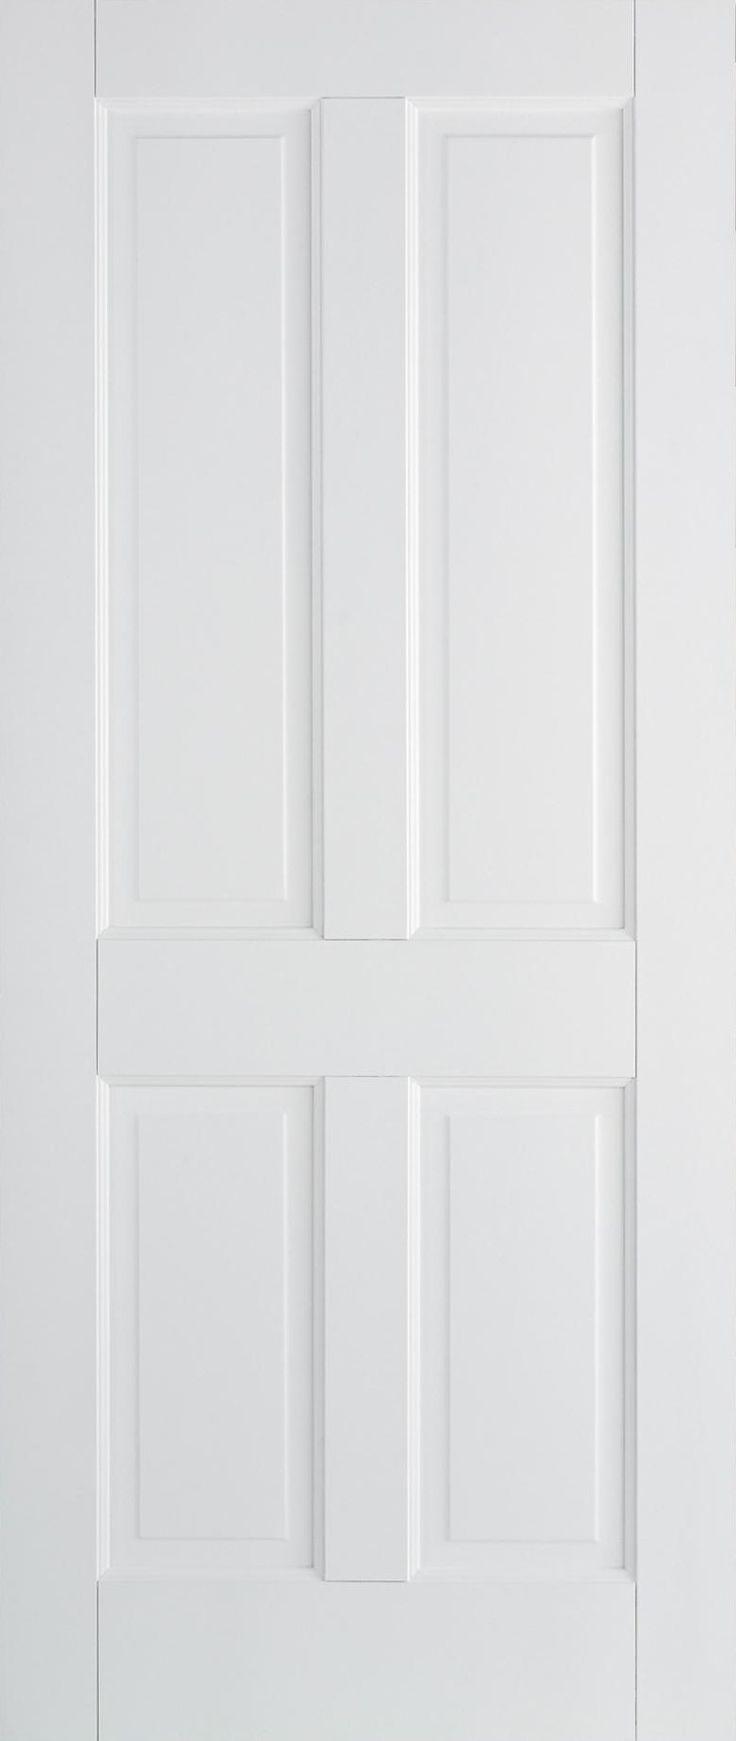 Canterbury Traditional 4 Panel White Interior Door by LPD